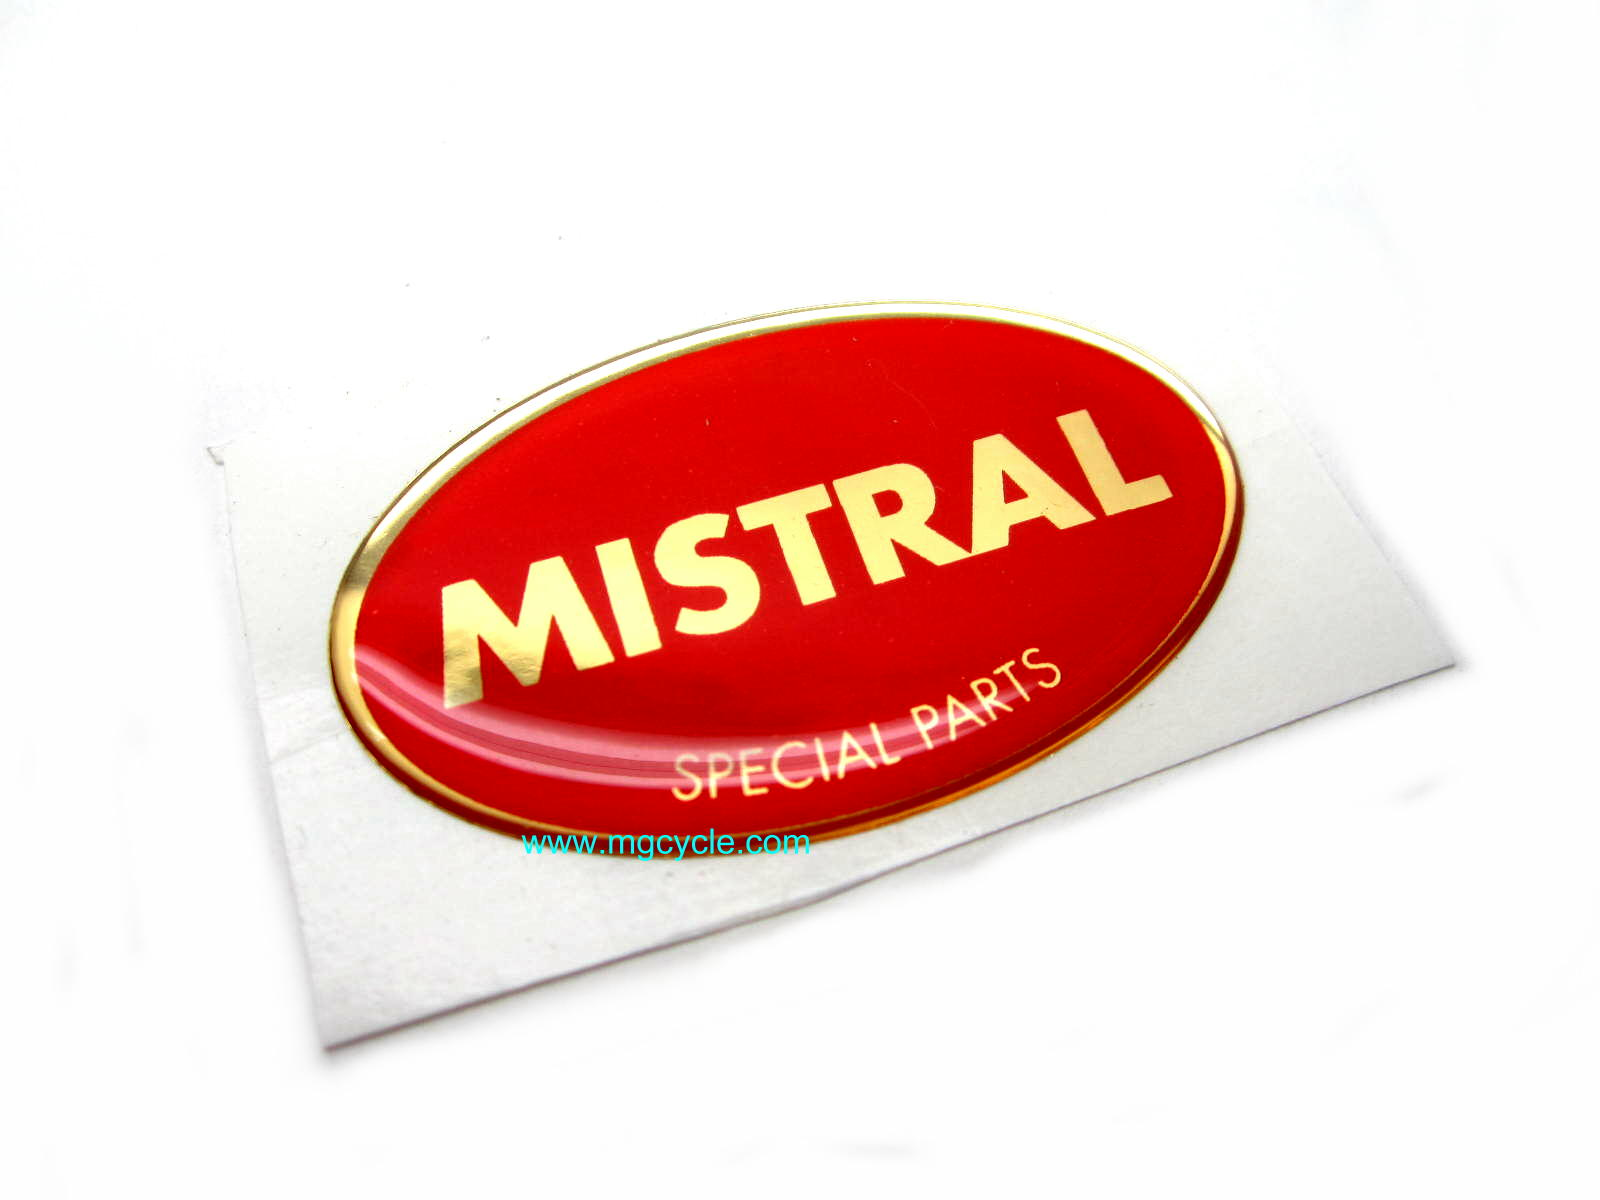 Mistral sticker, metallic vinyl 55mm x 35mm